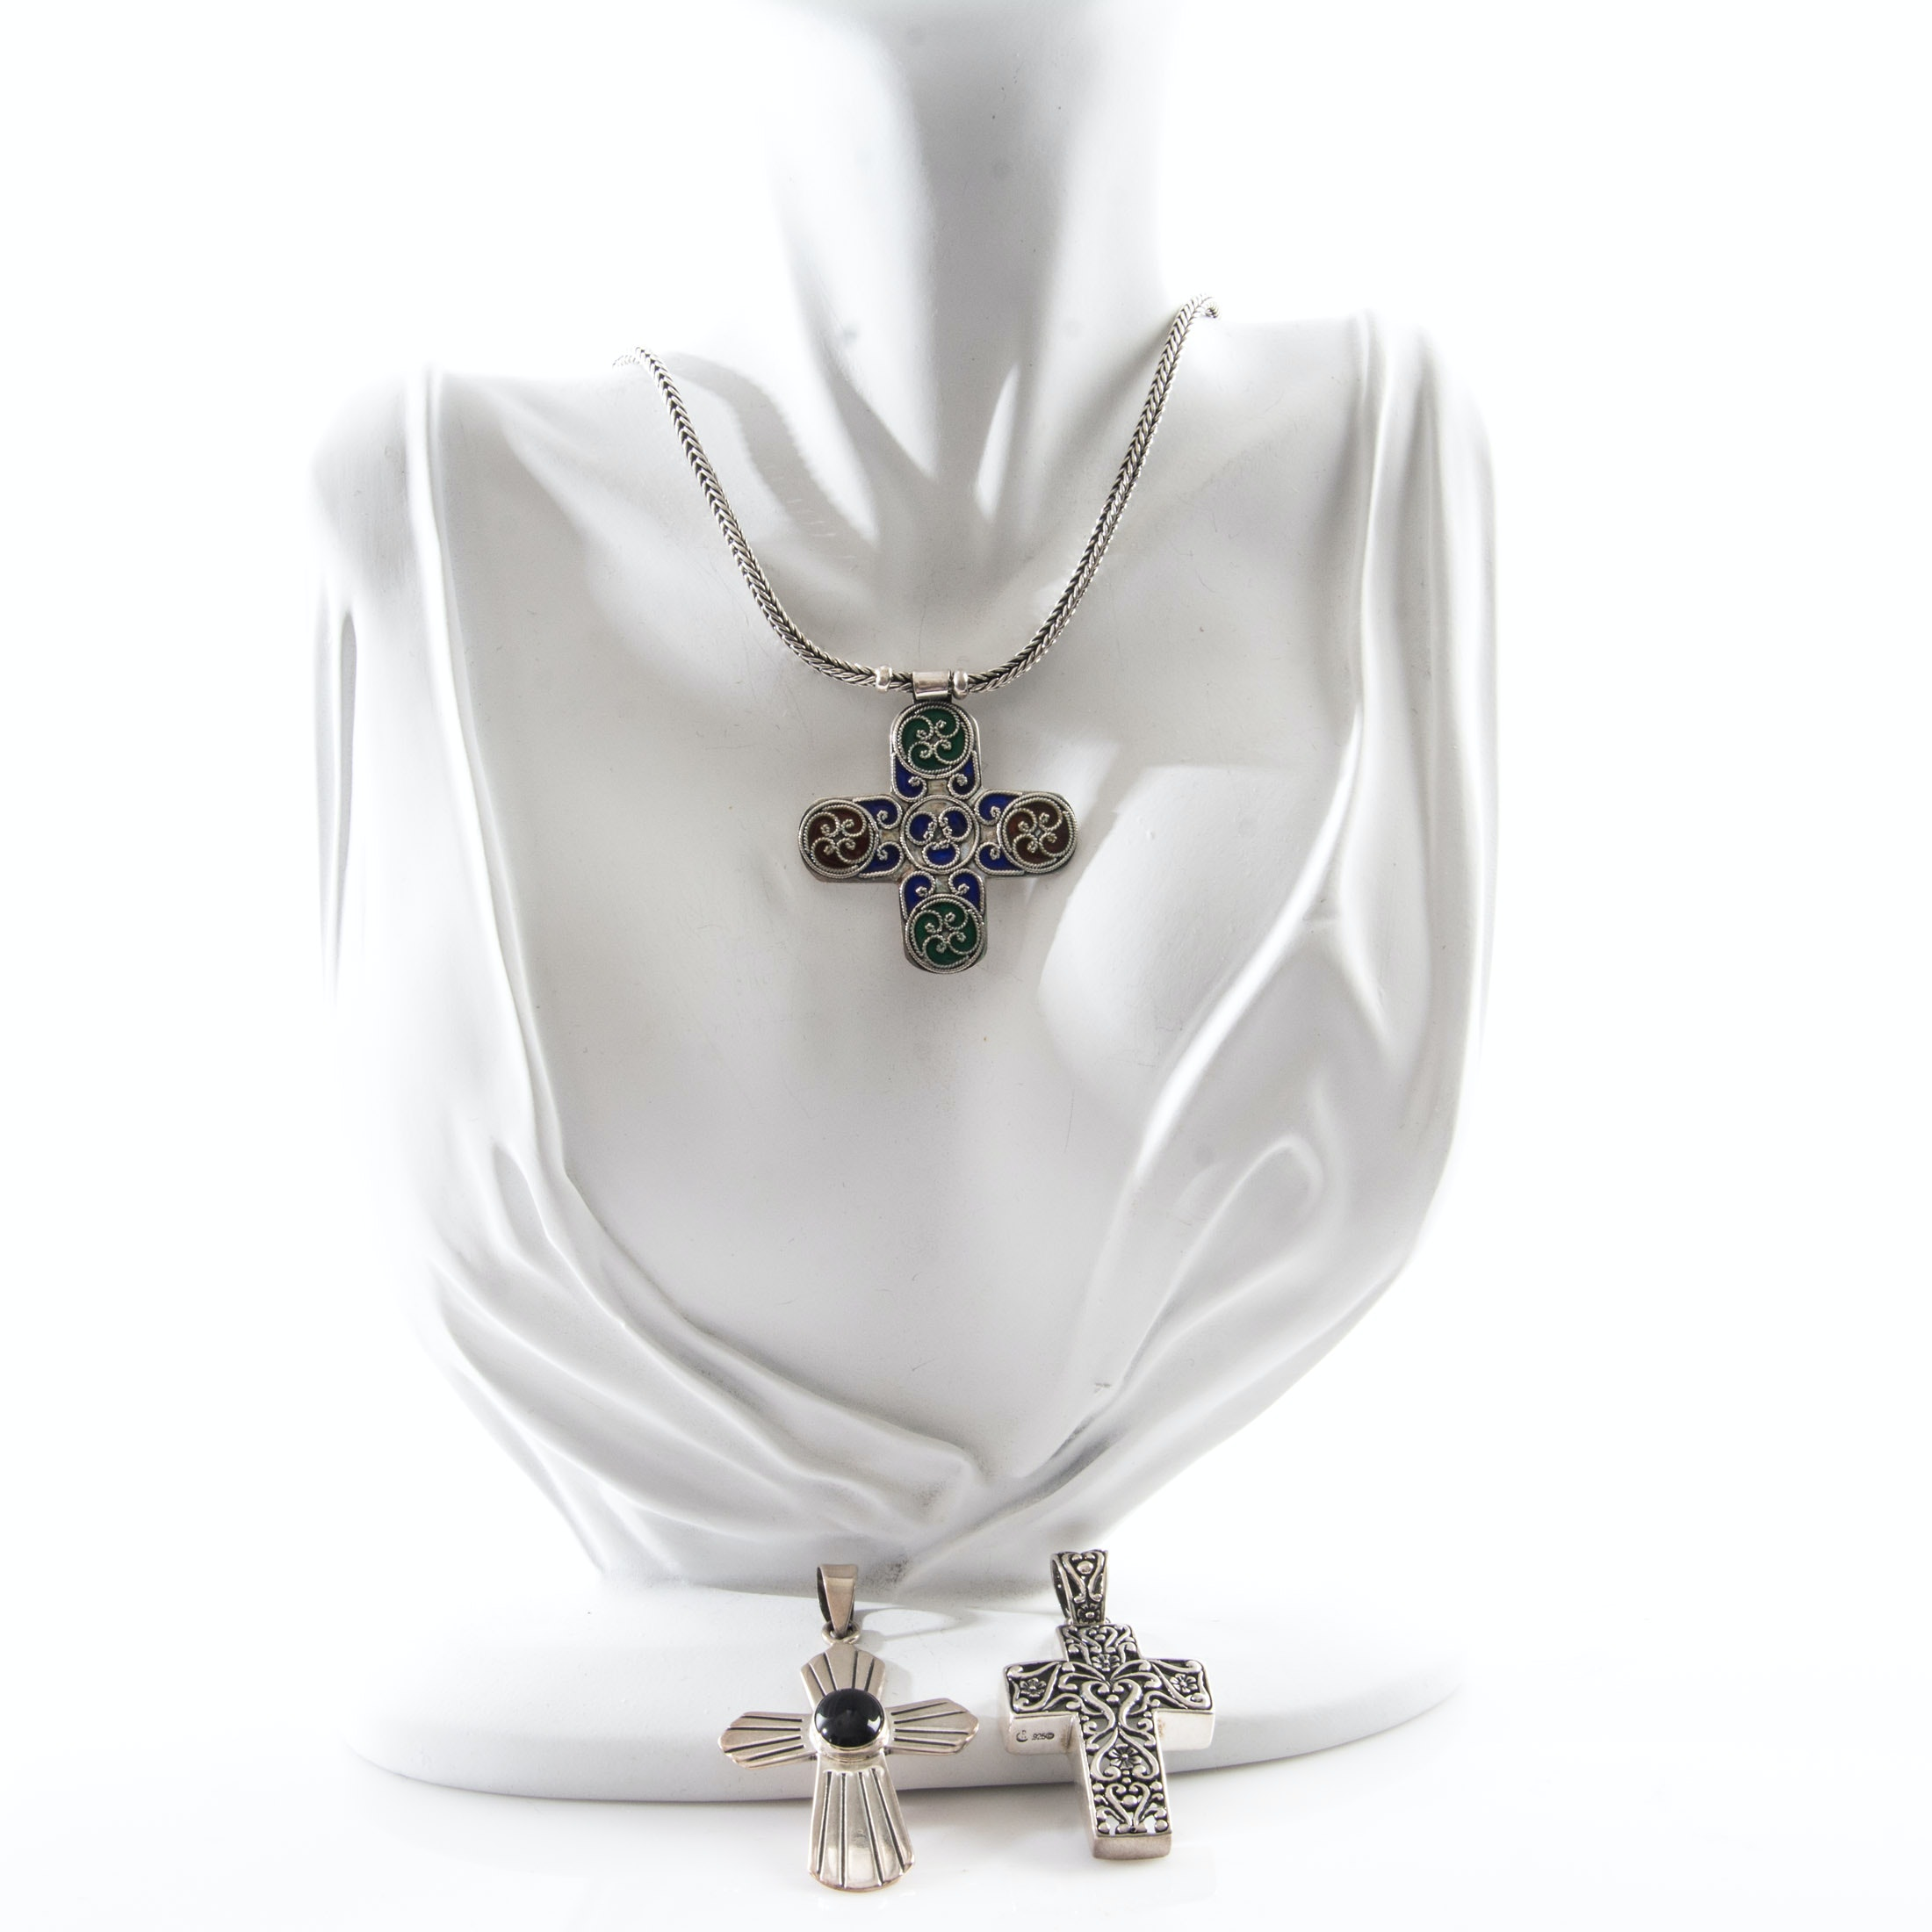 Sterling Silver Necklace with Cross Pendants